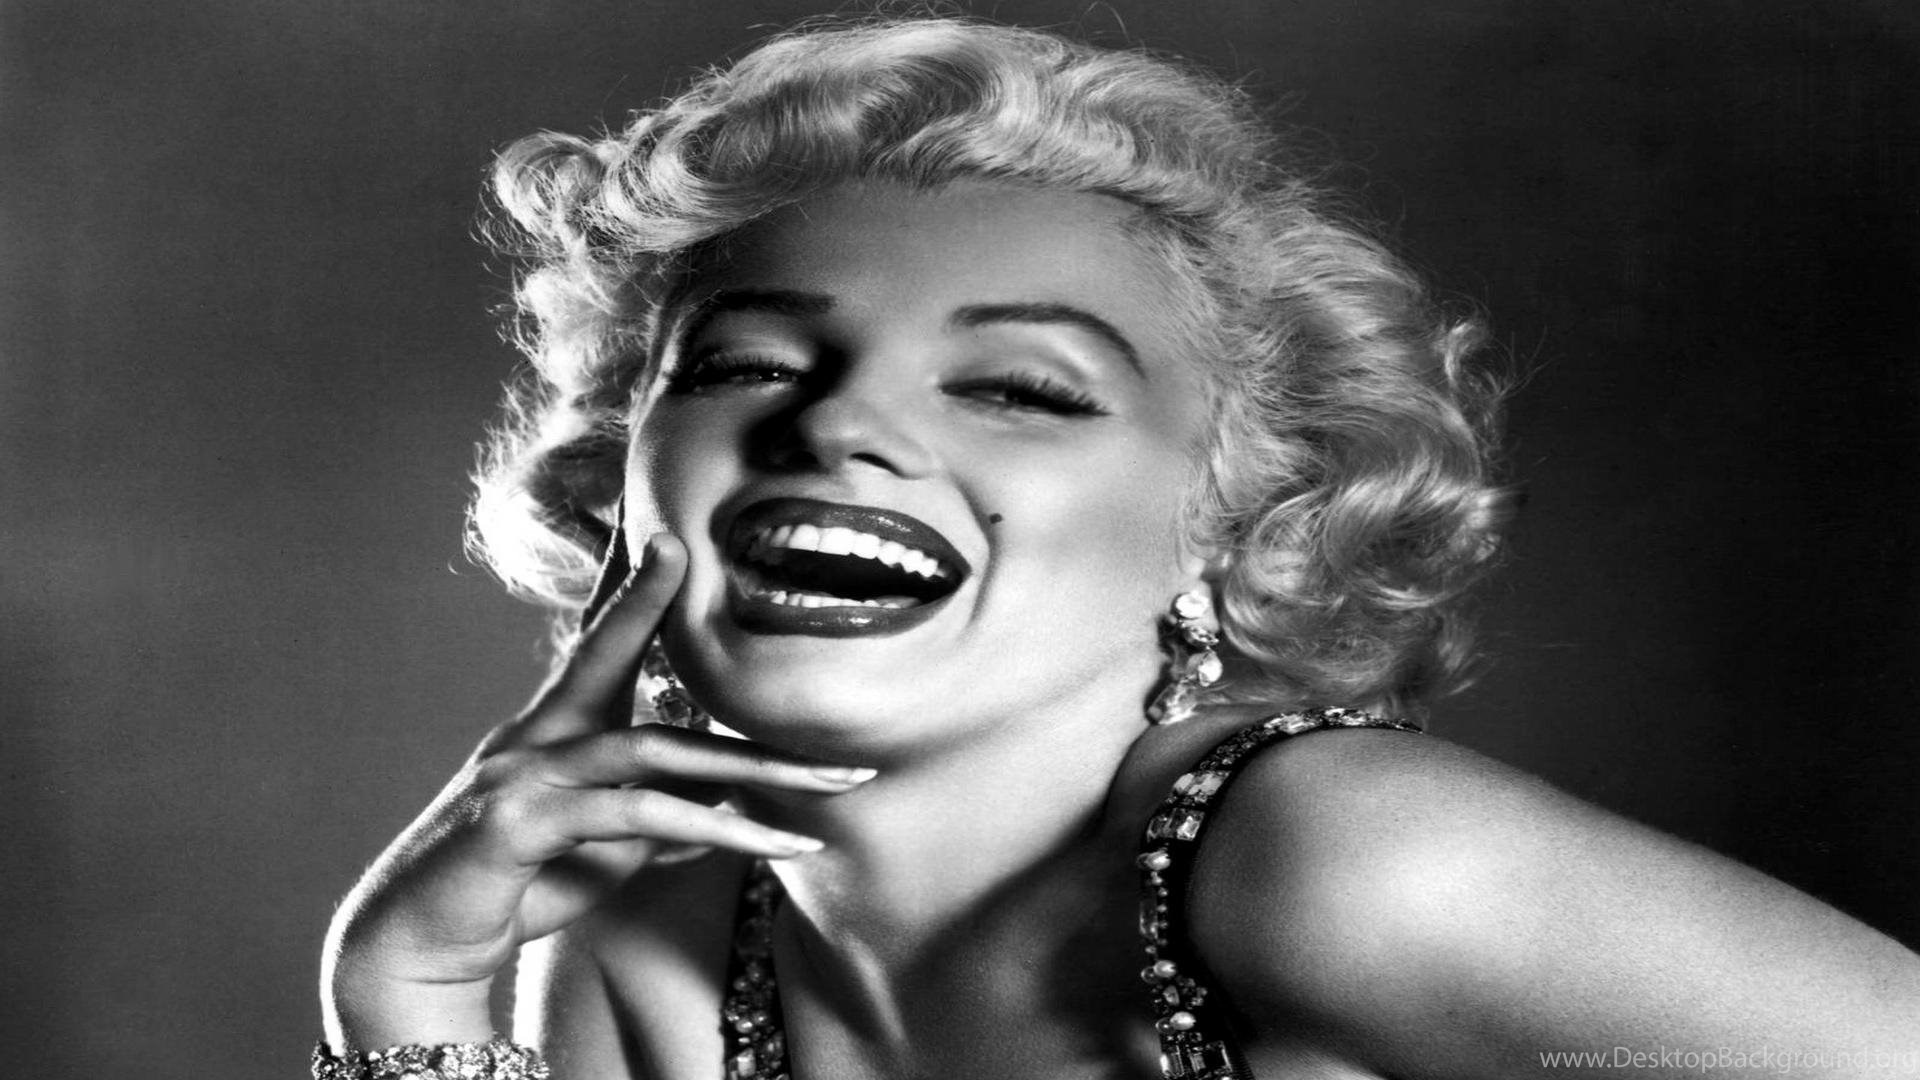 Marilyn Monroe Wallpapers Backgrounds With Quality Hd Desktop